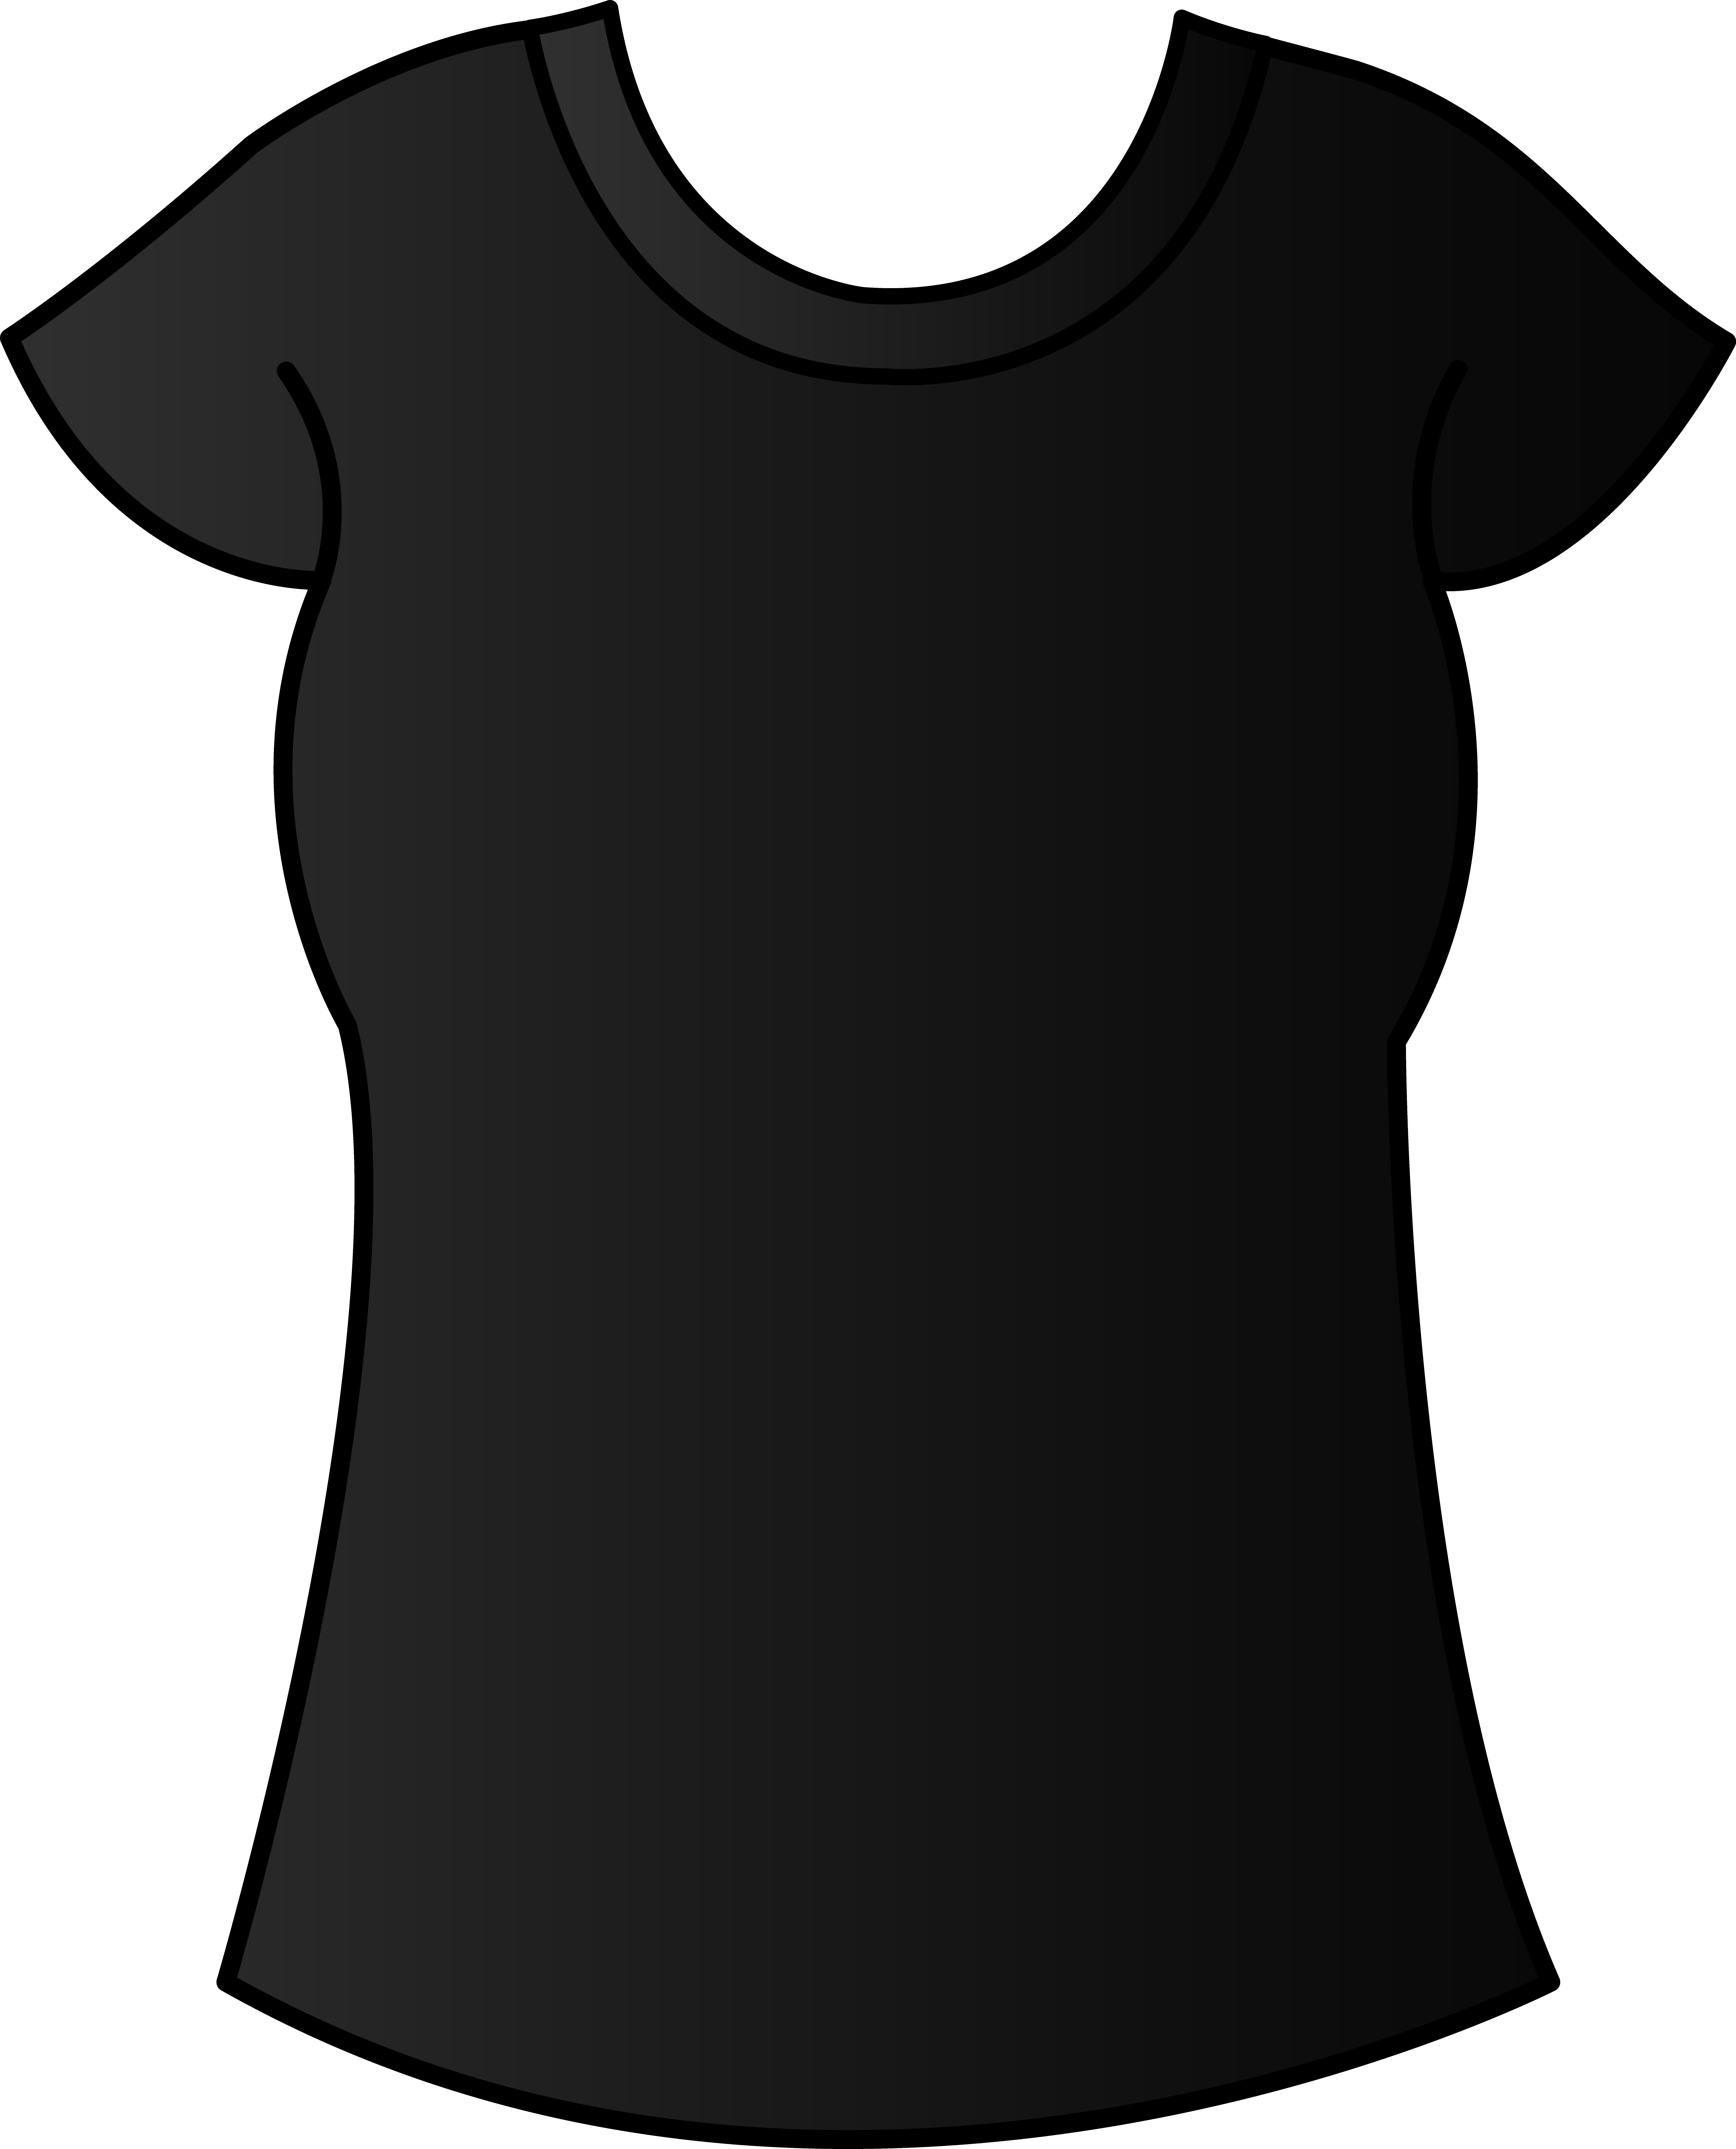 black t shirt vector - photo #29